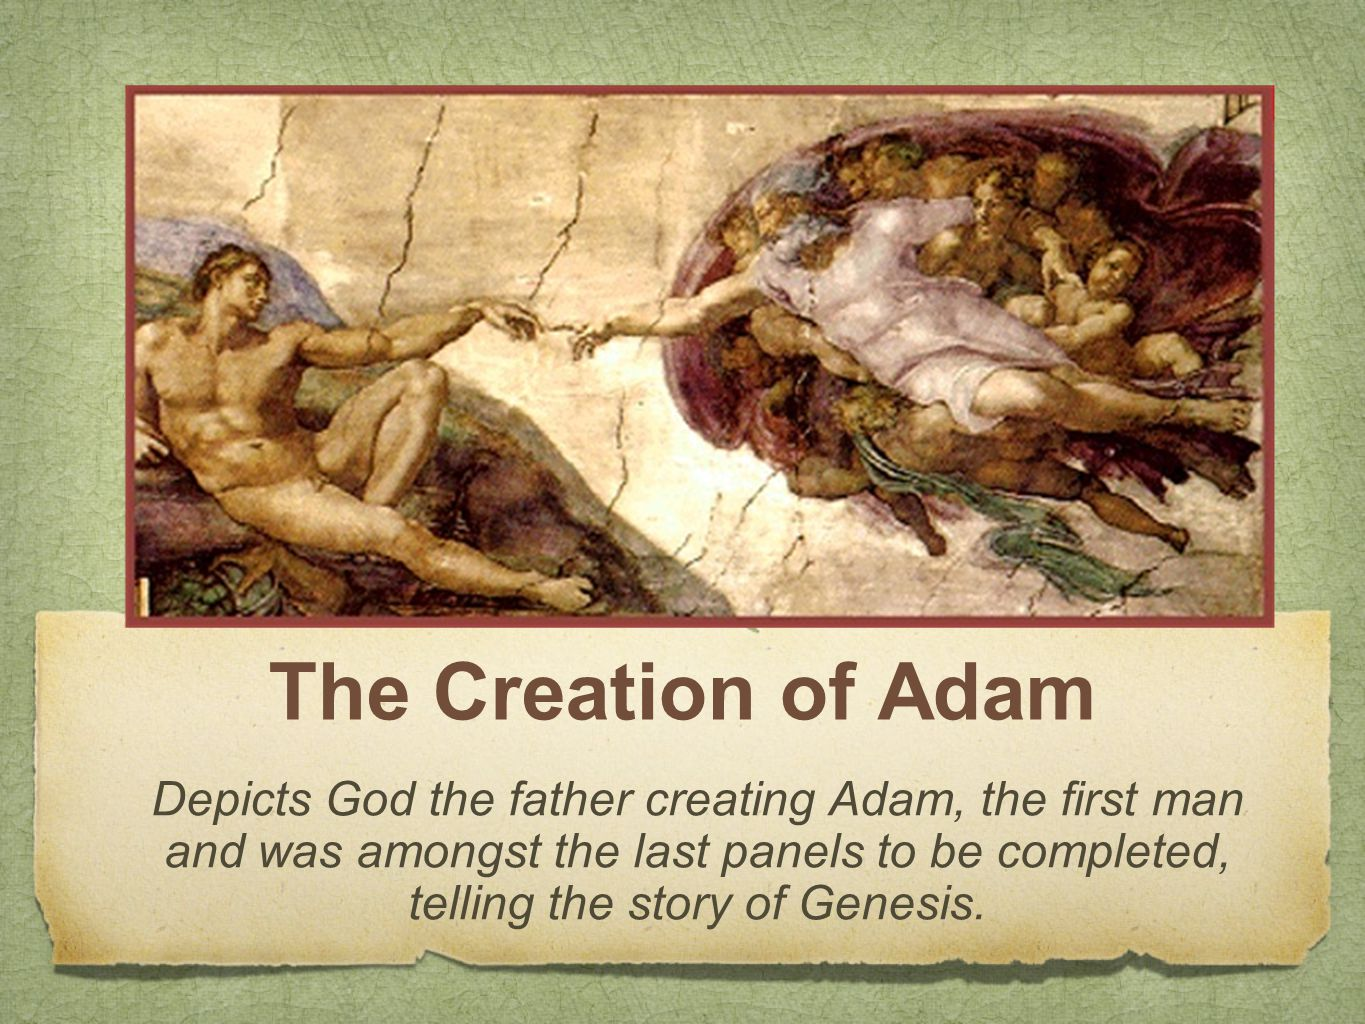 The Creation of Adam Depicts God the father creating Adam, the first man and was amongst the last panels to be completed, telling the story of Genesis.